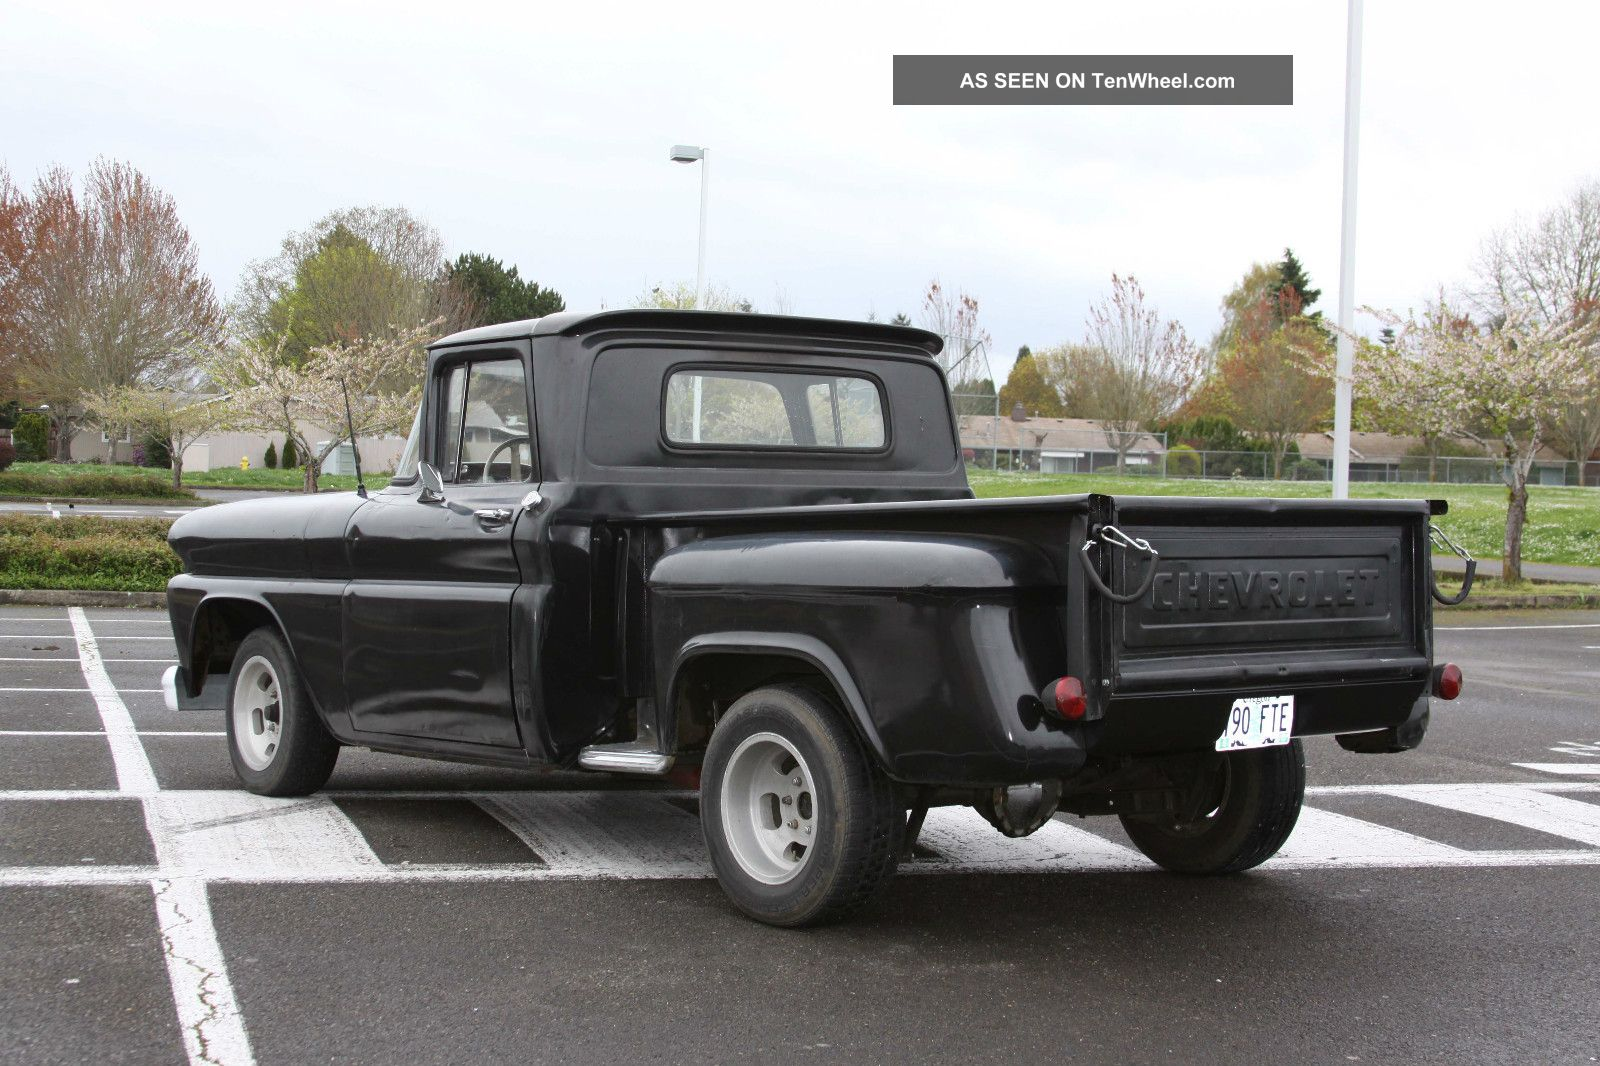 1961 Chevy Apache Lookup Beforebuying Chevrolet Pick Up Pickup Truck